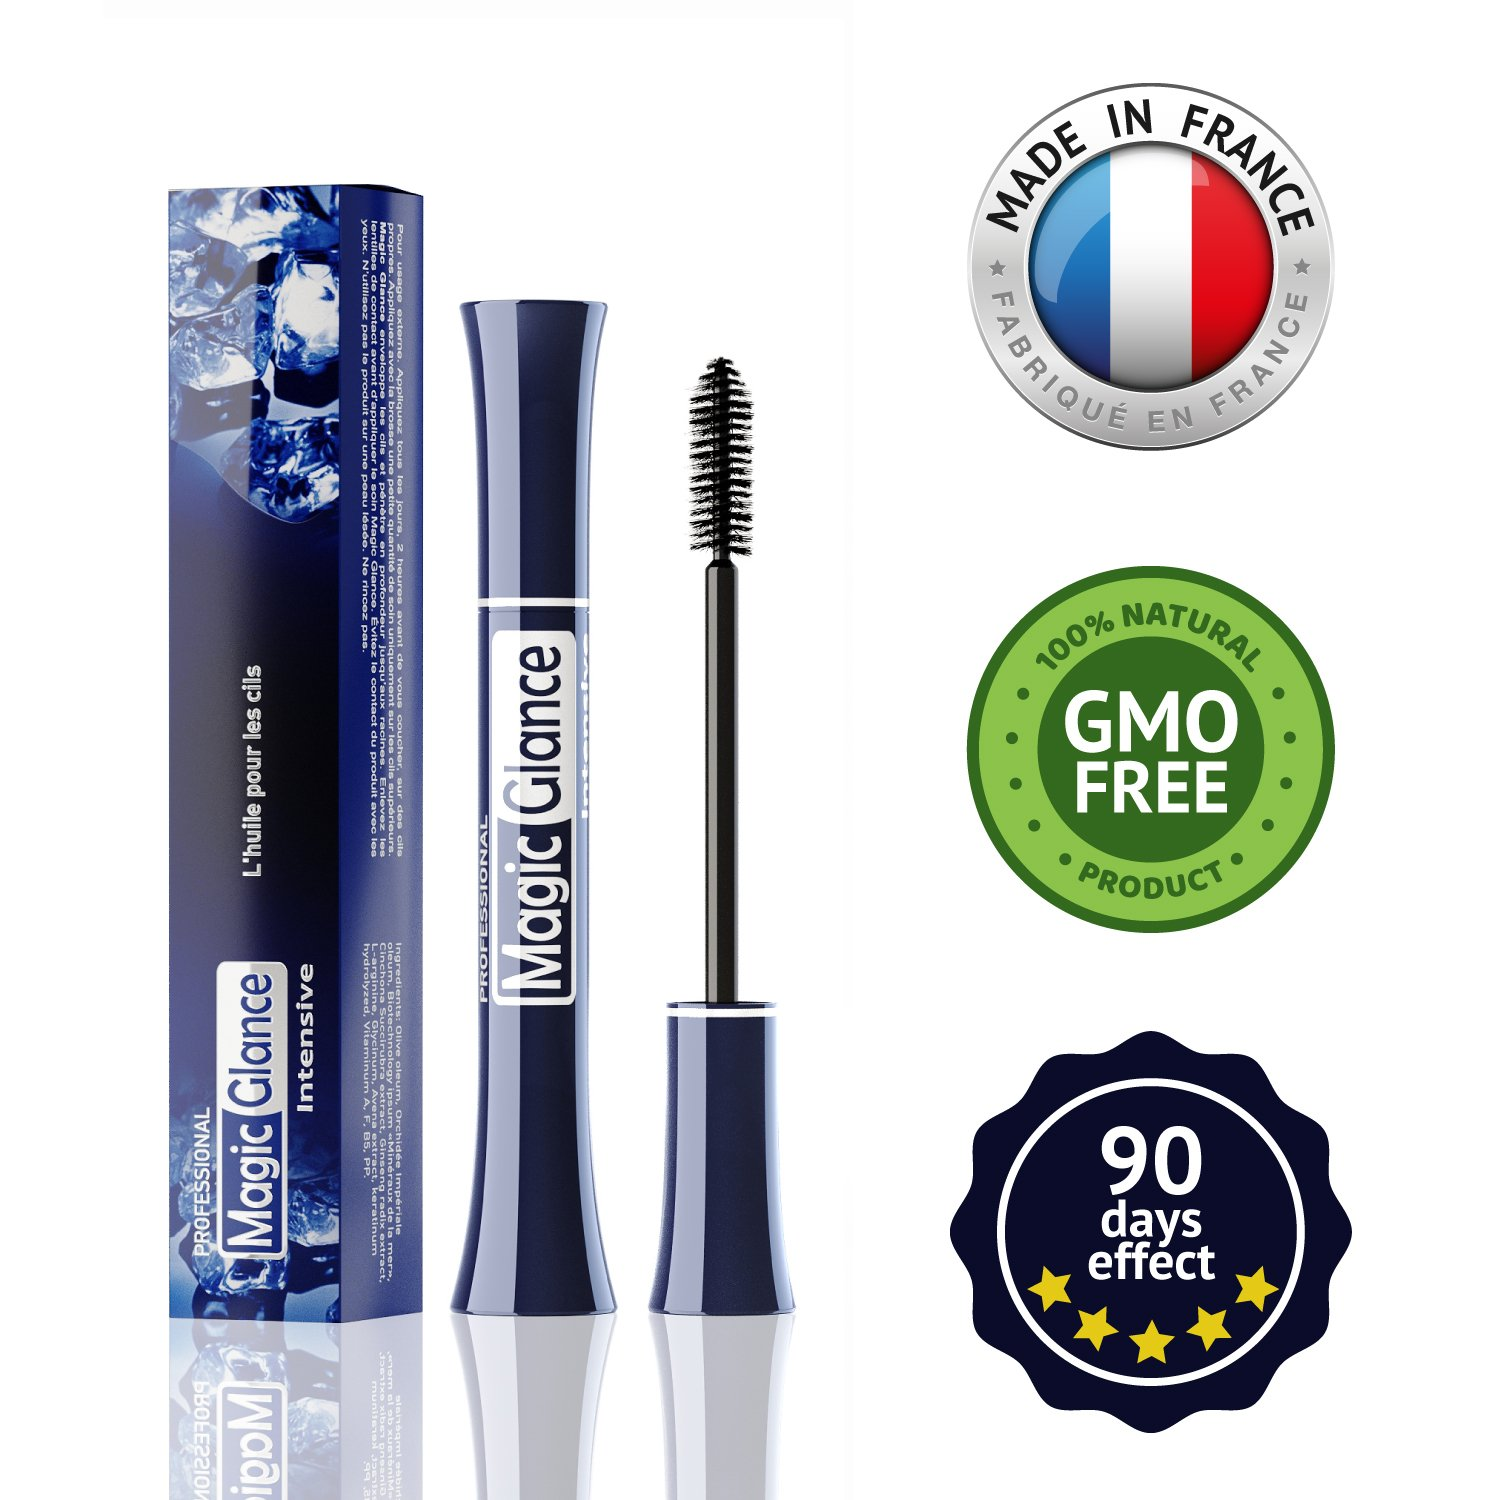 Natural Eyebrow and Eyelash Growth Serum Boost Enhancer for Full, Long, Thick & Luscious Lashes — Unique formula — L-ARGININE — Fast Results in 10 Days — Rapid Lash Growth, Healing, Treatment & Care